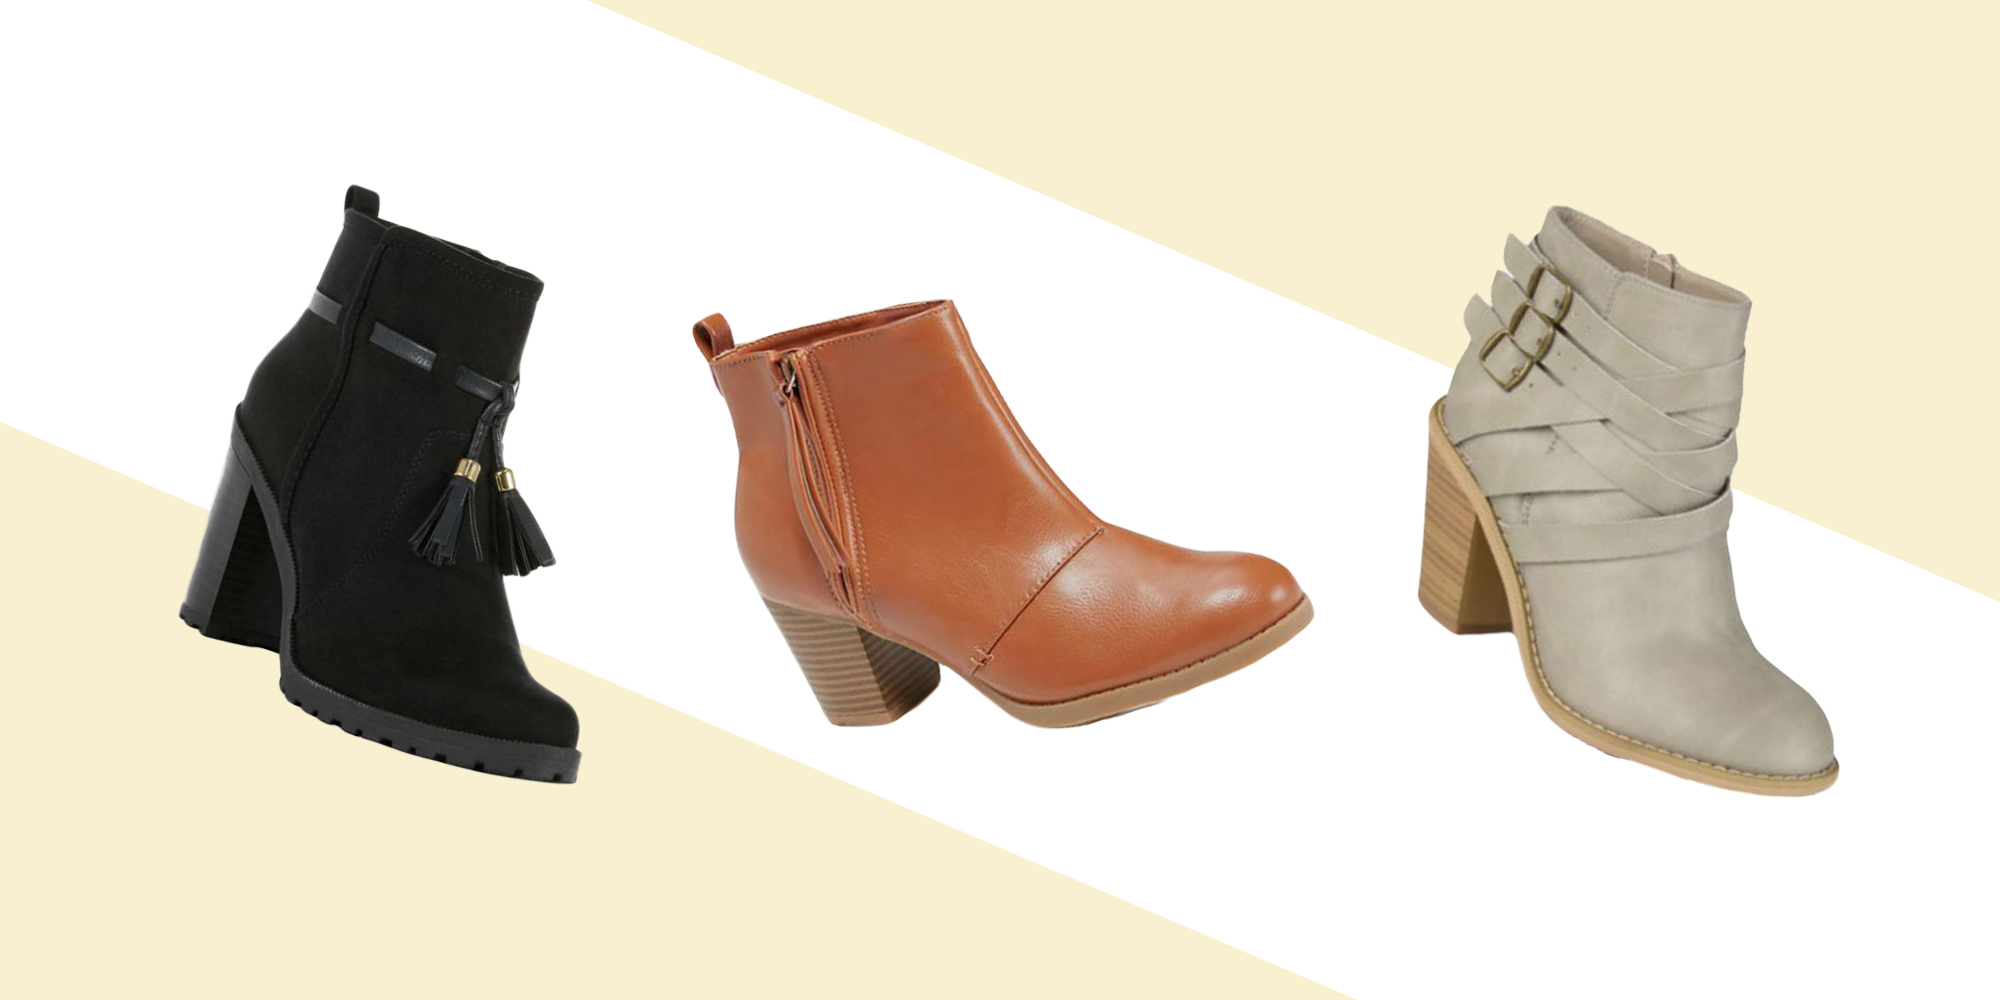 Show your fearless side in a pair of combat boots, or dress to impress in heeled pointed toe booties. With over-the-knee boots to platform booties, we have what you need—even on a budget. Latest Trends, Styles & Promotions.